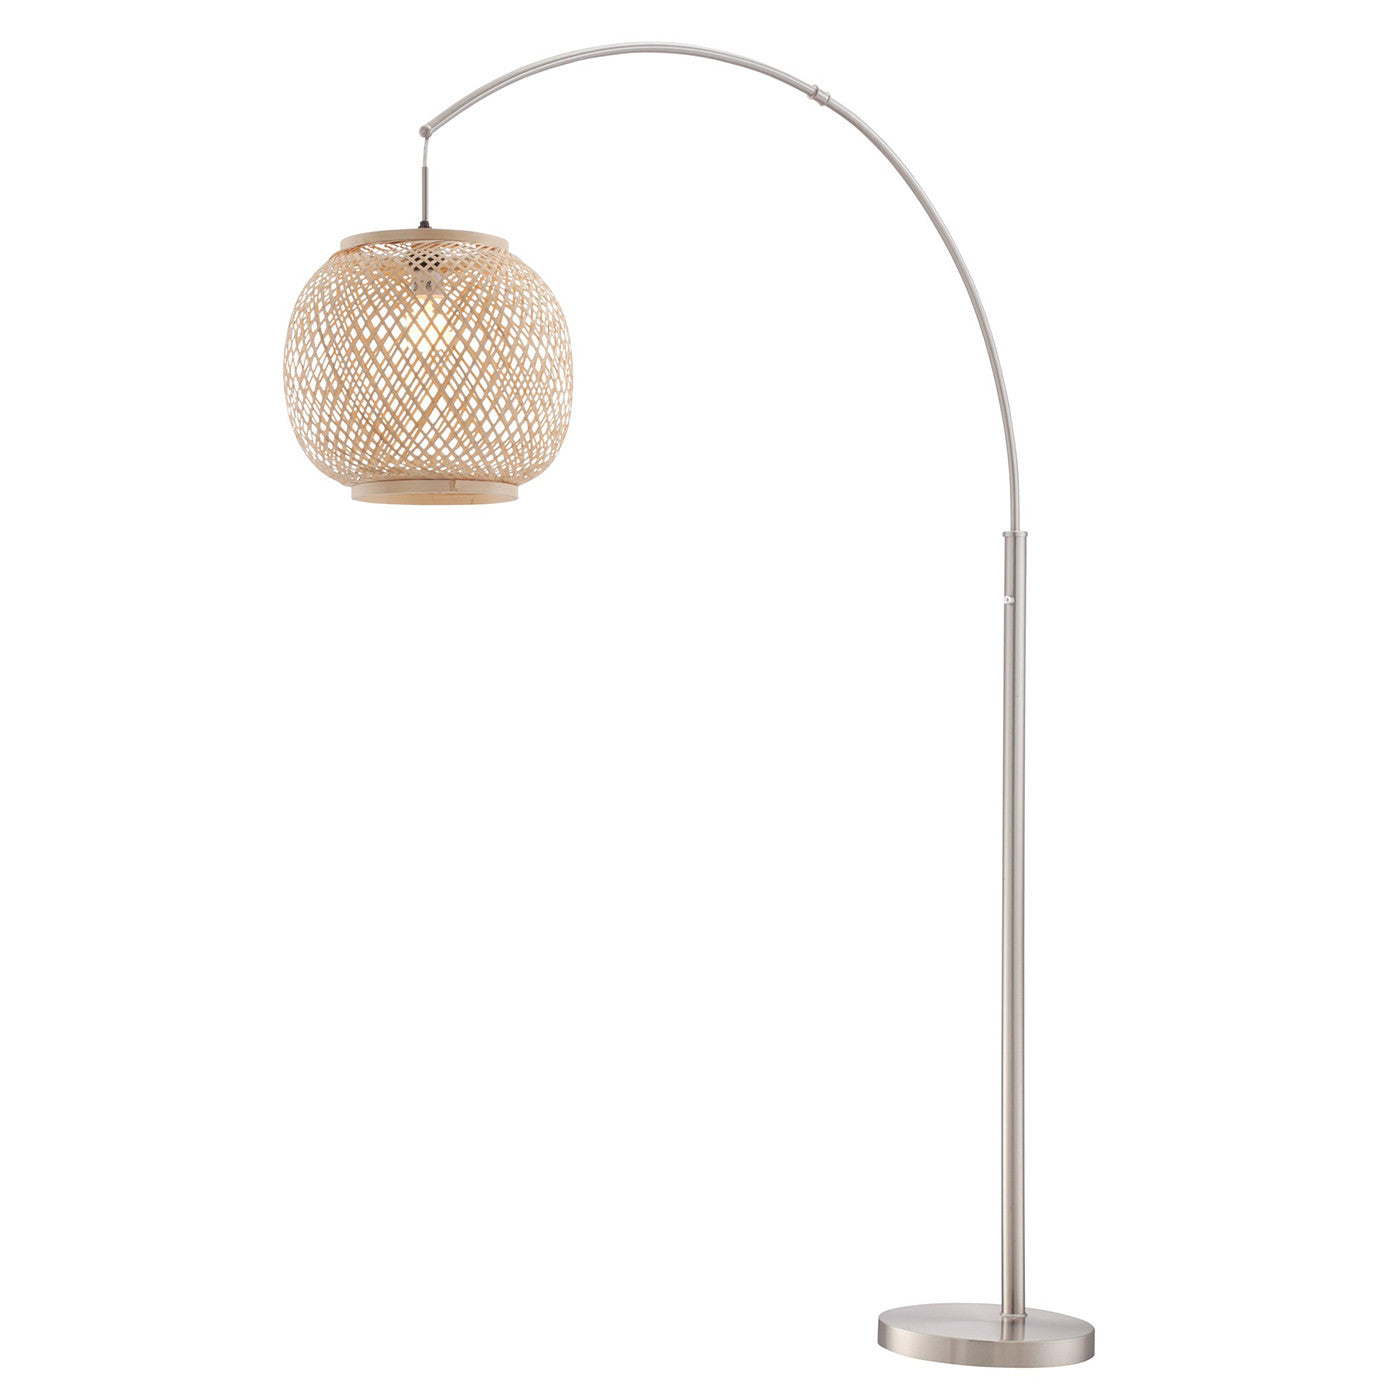 Villa Arch Floor Lamp